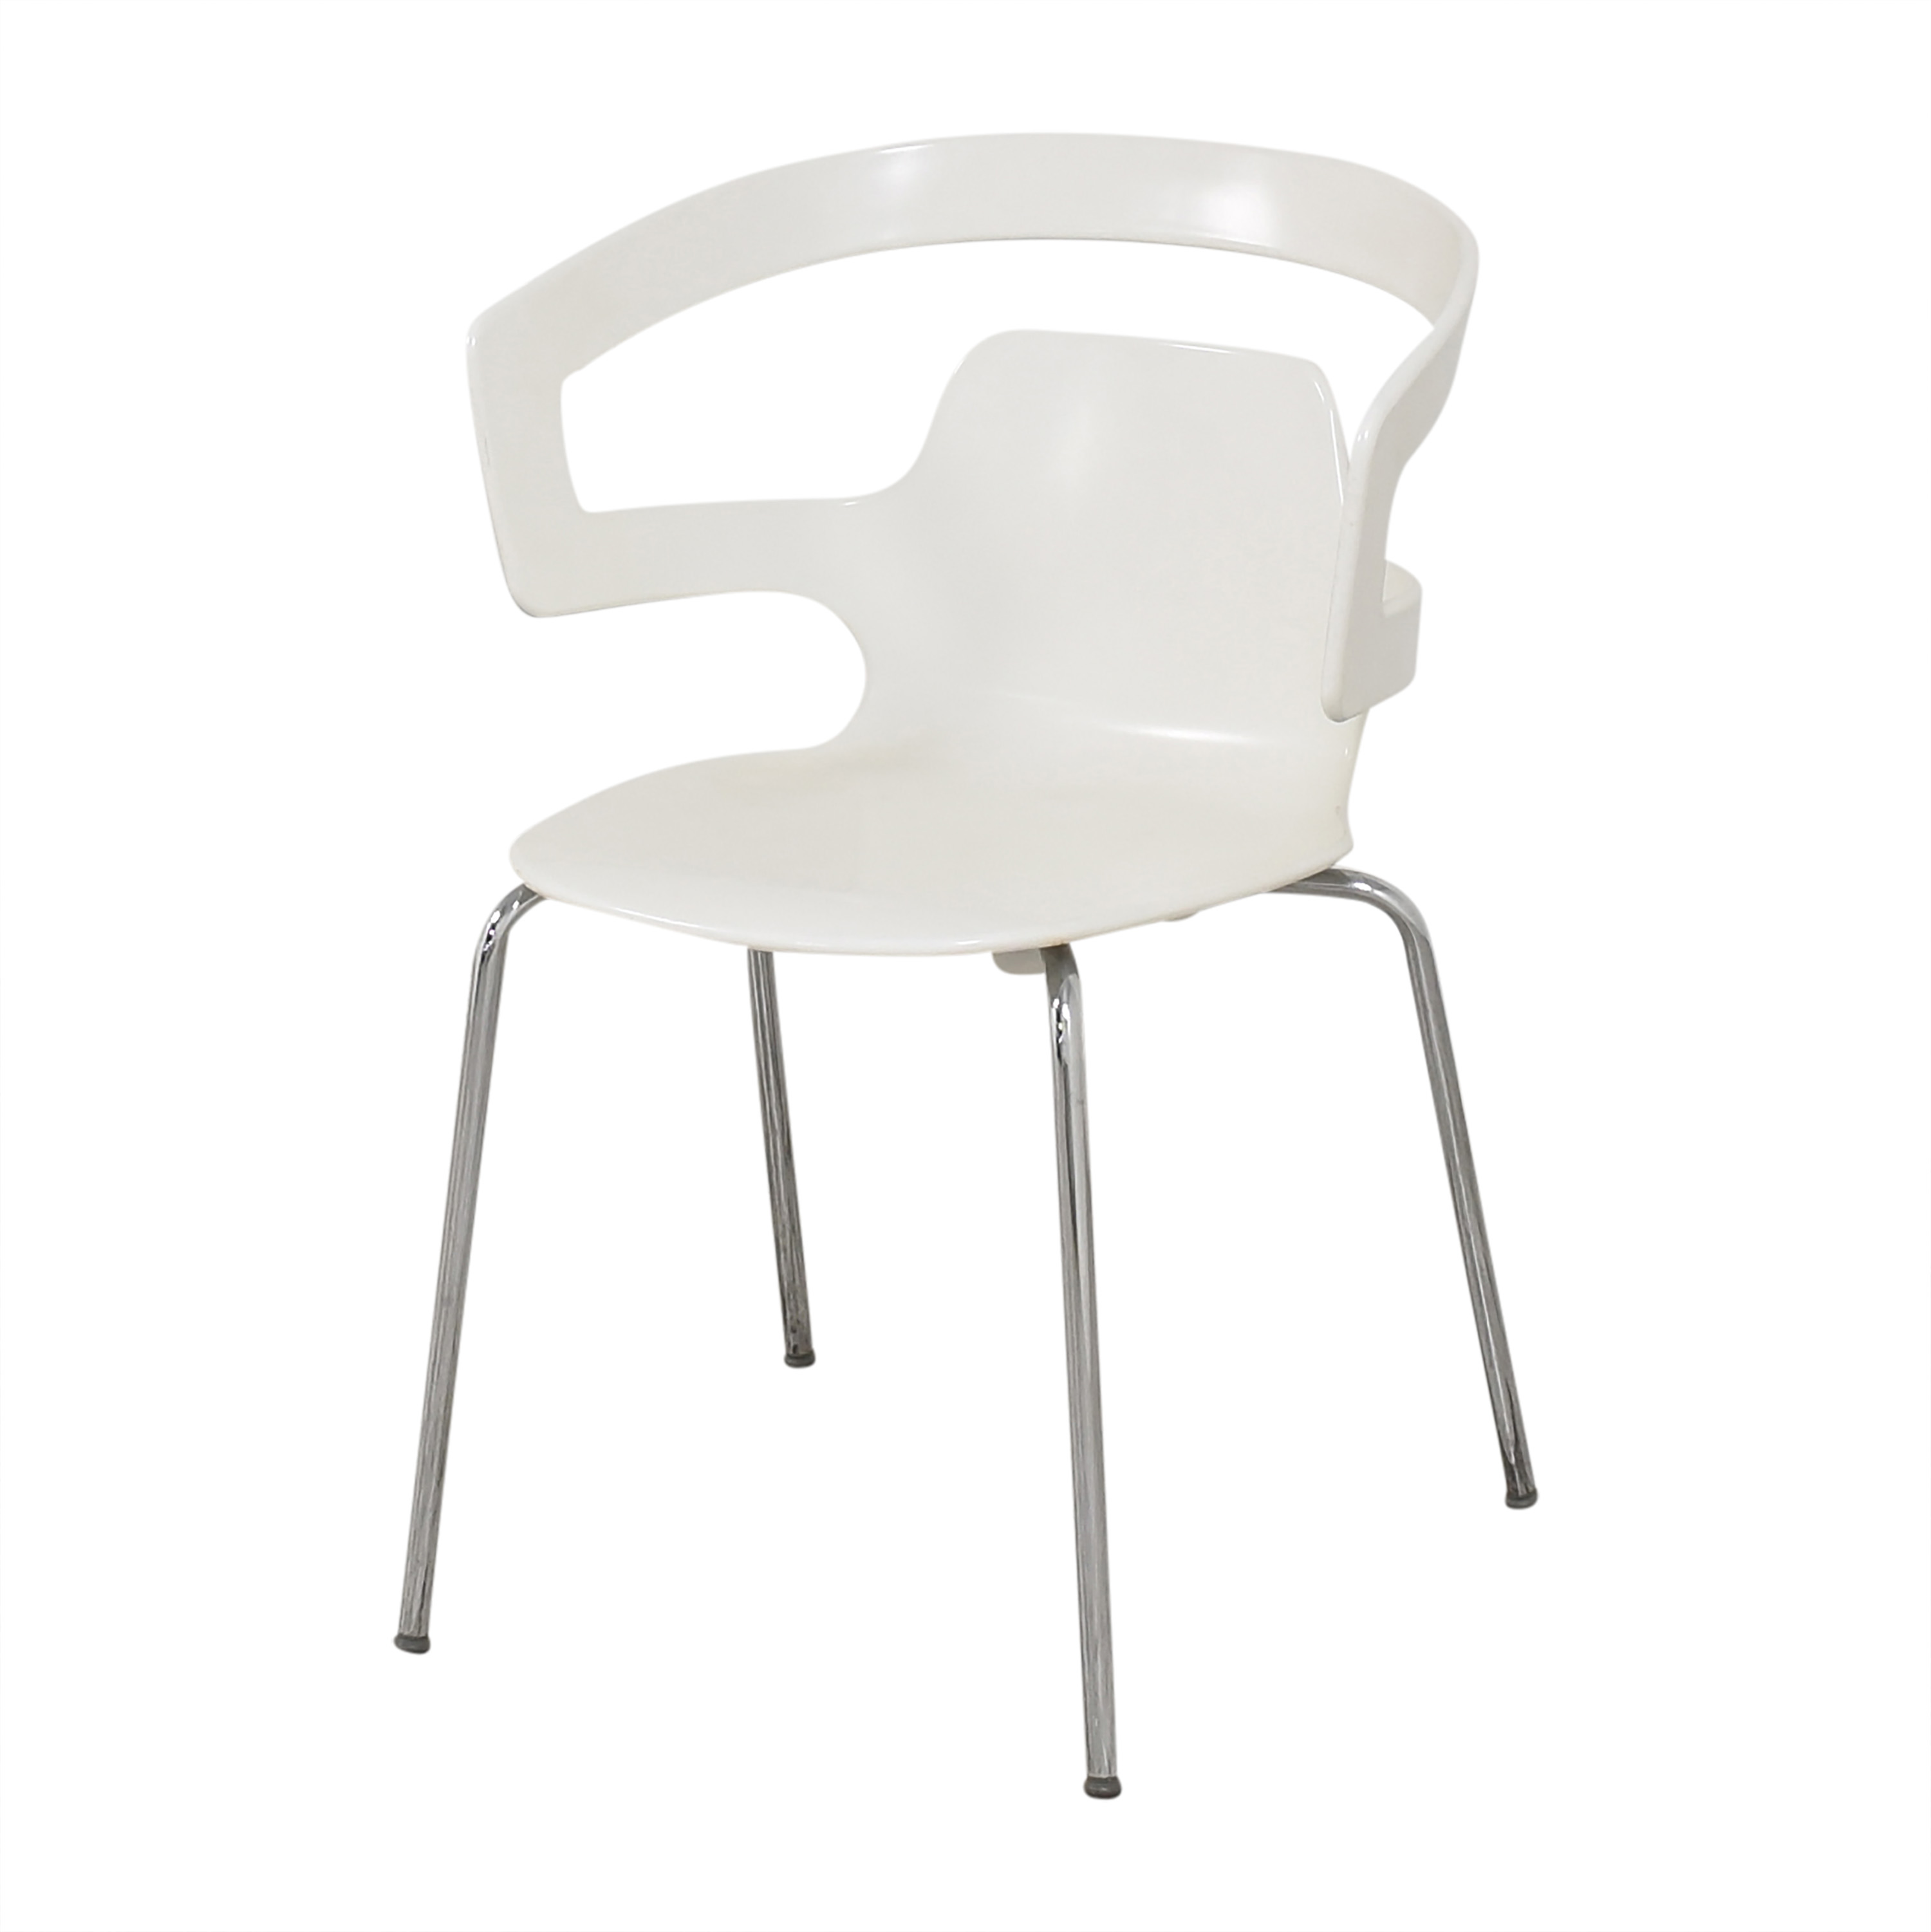 Cappellini Cappellini Aero Dining Chairs white and silver